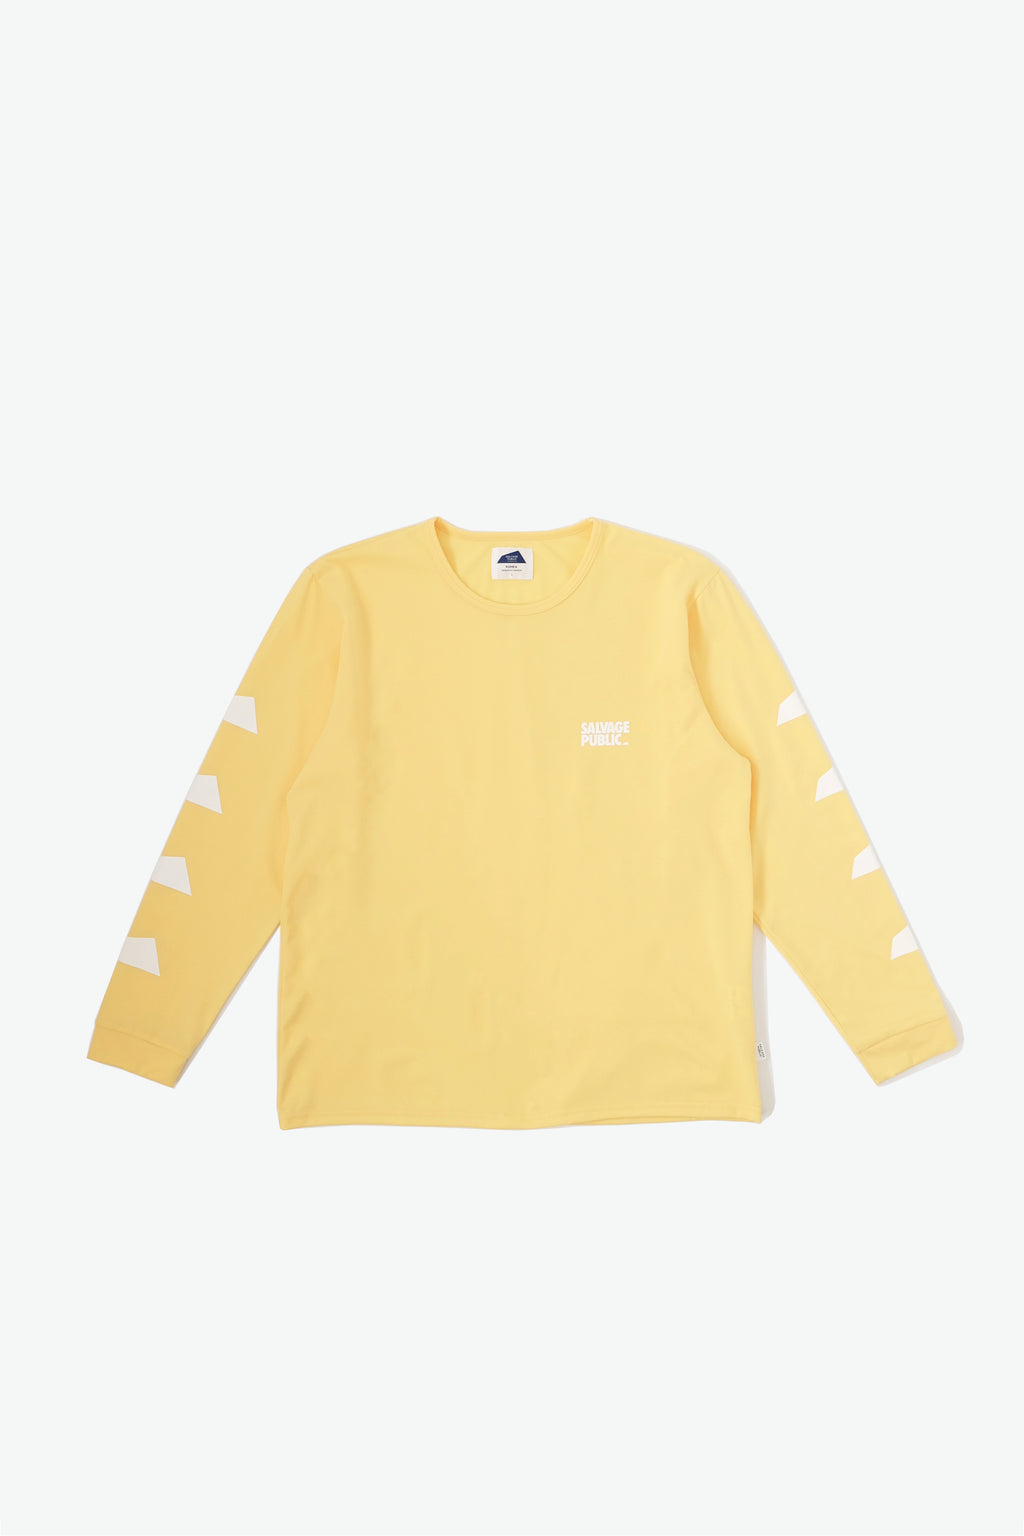 Long Sleeve Surf T-Shirt - Brand Stamp - Yellow